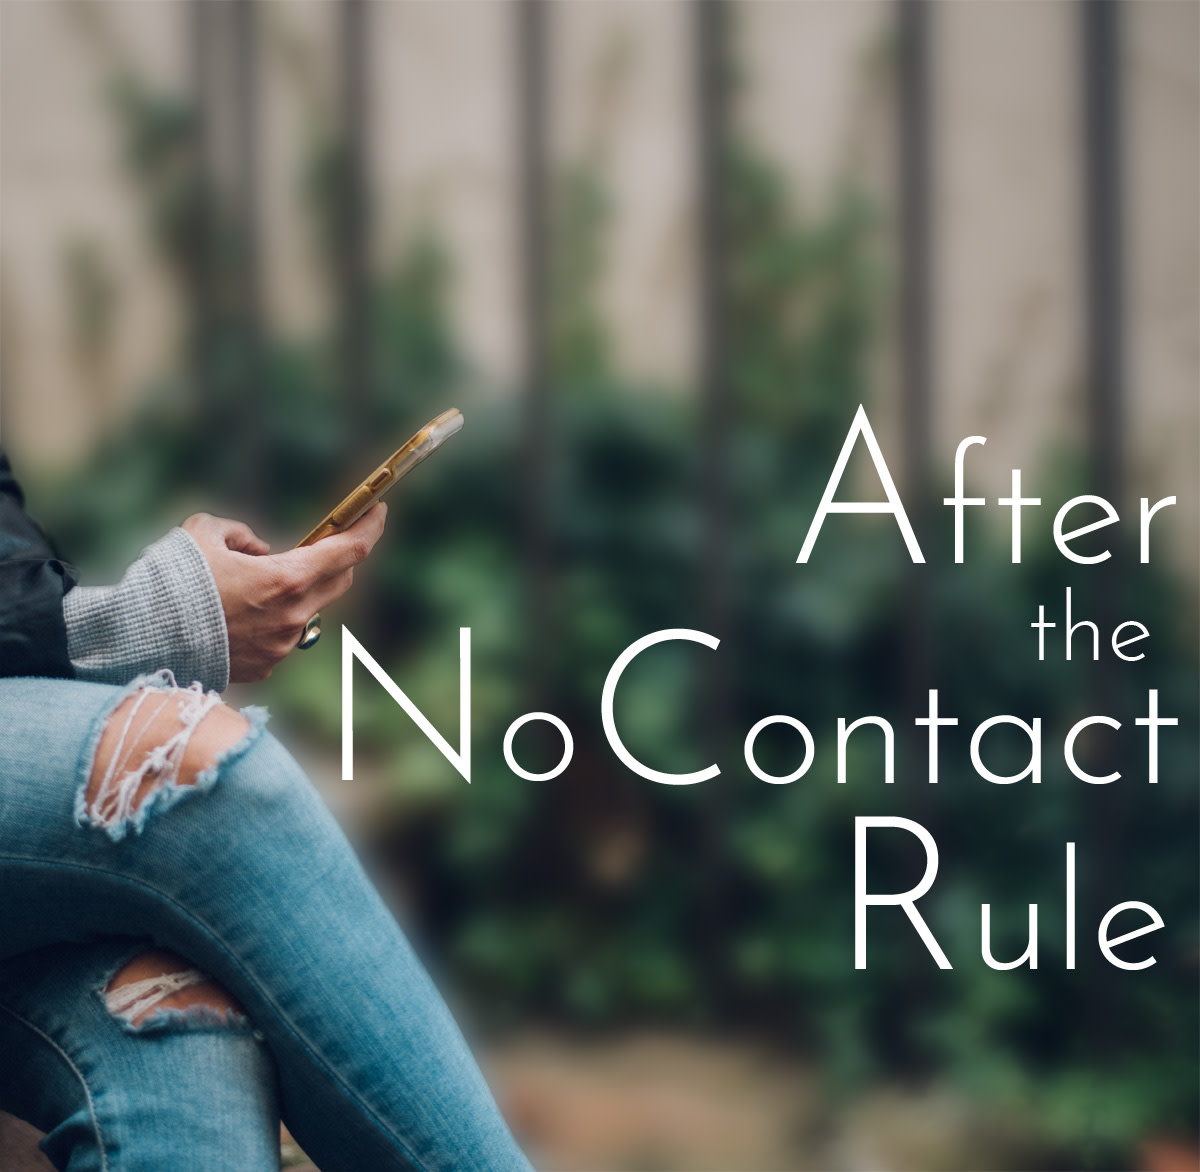 How to Contact Your Ex After the No Contact Rule | PairedLife